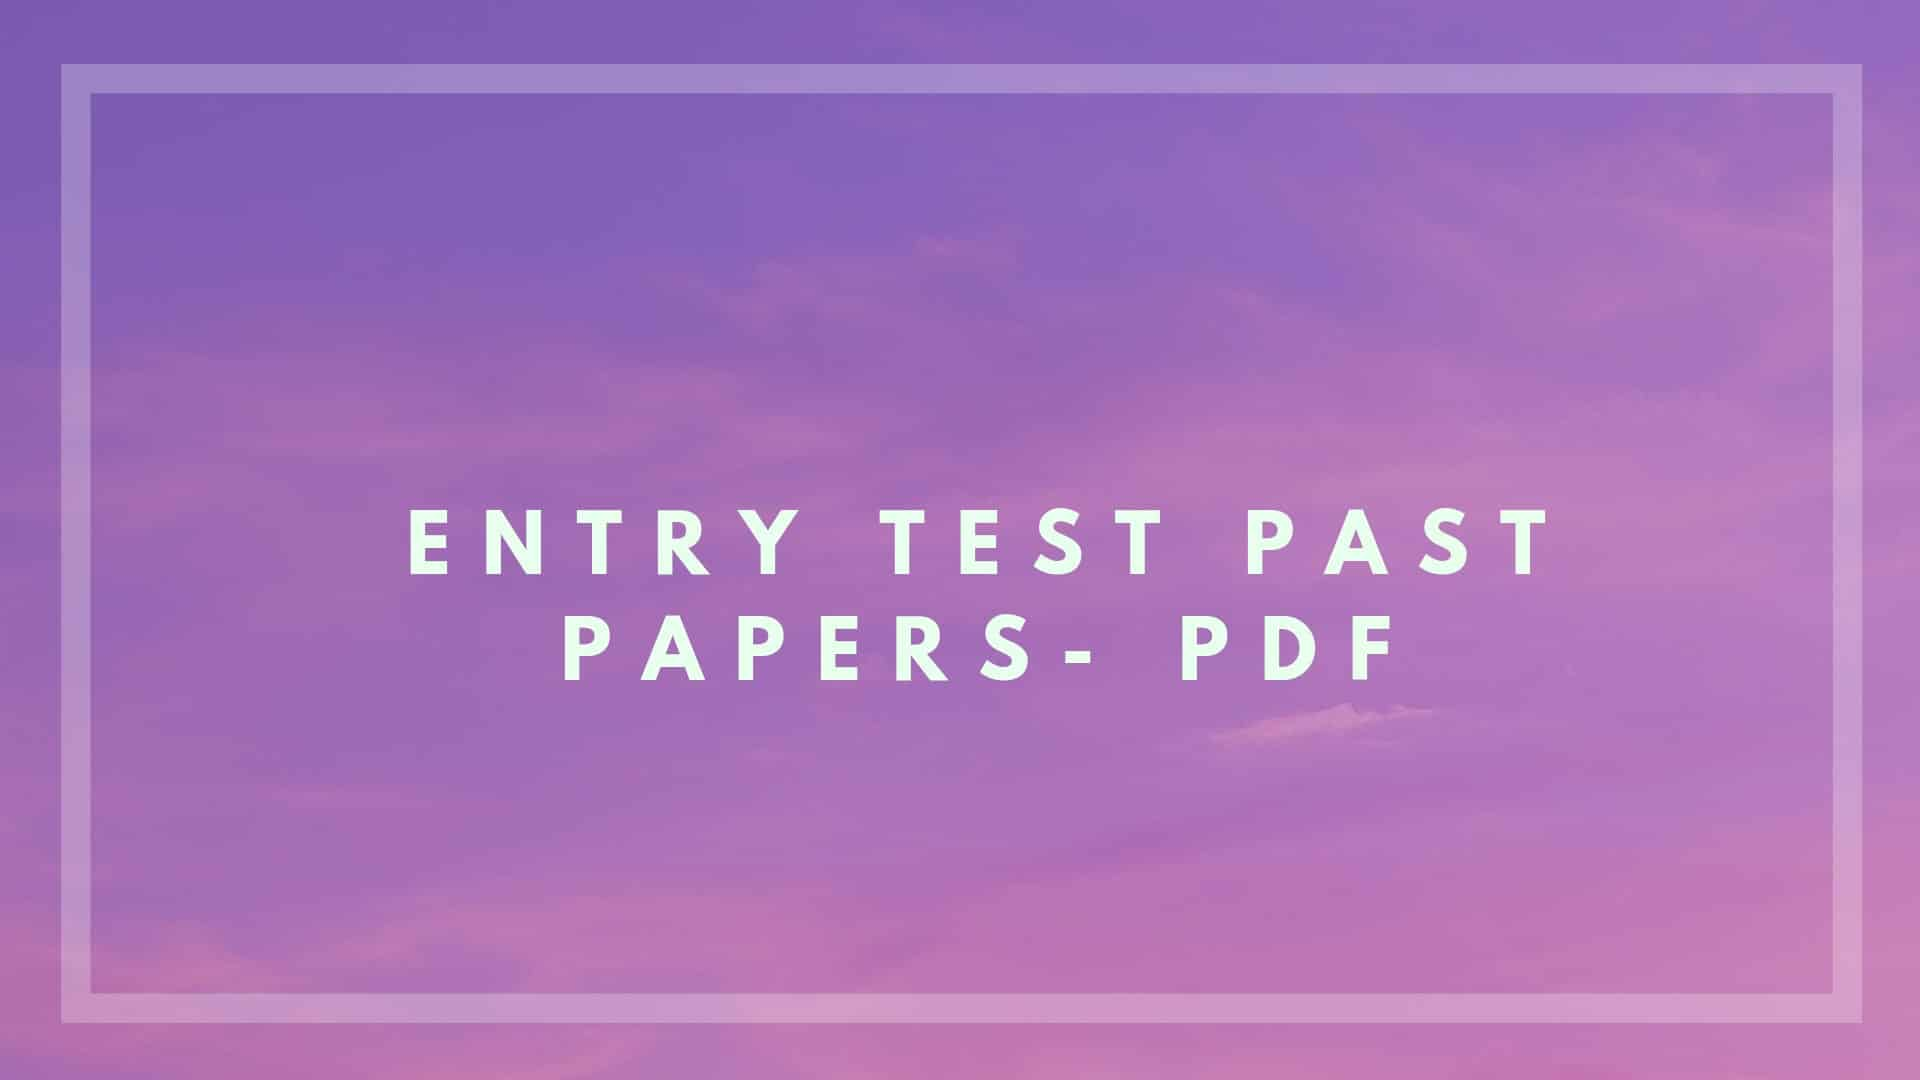 ecat past papers free download